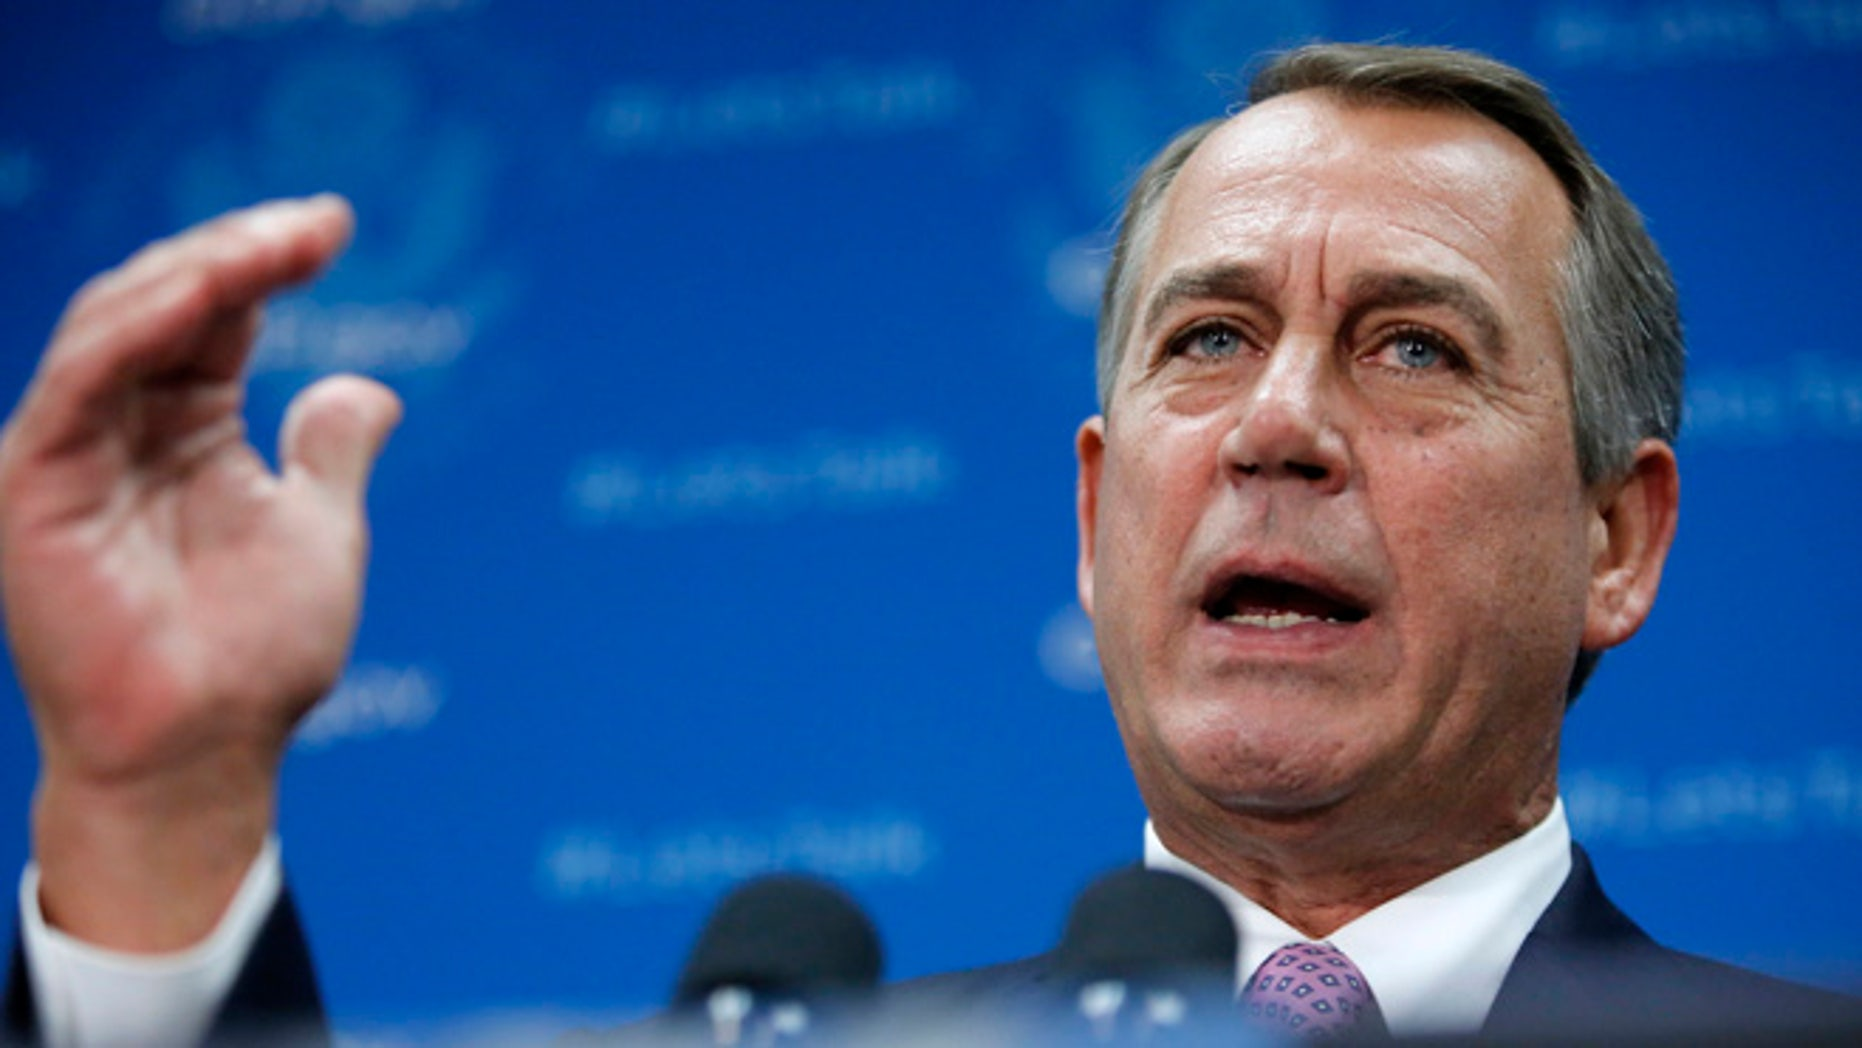 """Oct. 4, 2013: U.S. House Speaker John Boehner (R-OH) addresses reporters during a news conference with fellow House Republicans at the U.S. Capitol in Washington. Boehner on Friday said the House will not vote on a """"clean"""" spending bill without conditions to end the government shutdown, and demanded spending cuts in exchange for raising the government's borrowing limit."""